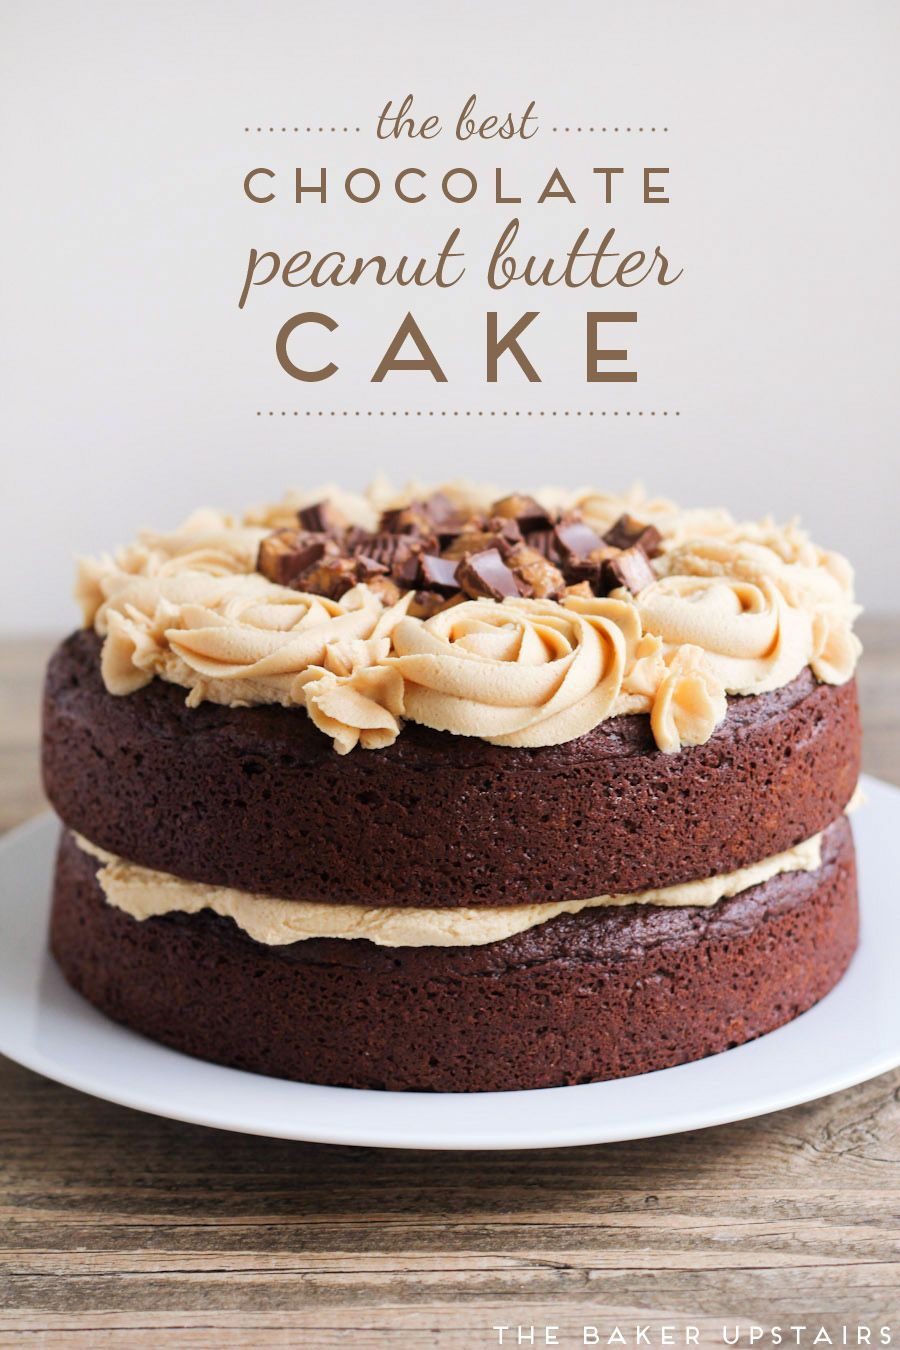 The Best Chocolate Peanut Butter Cake With Images Peanut